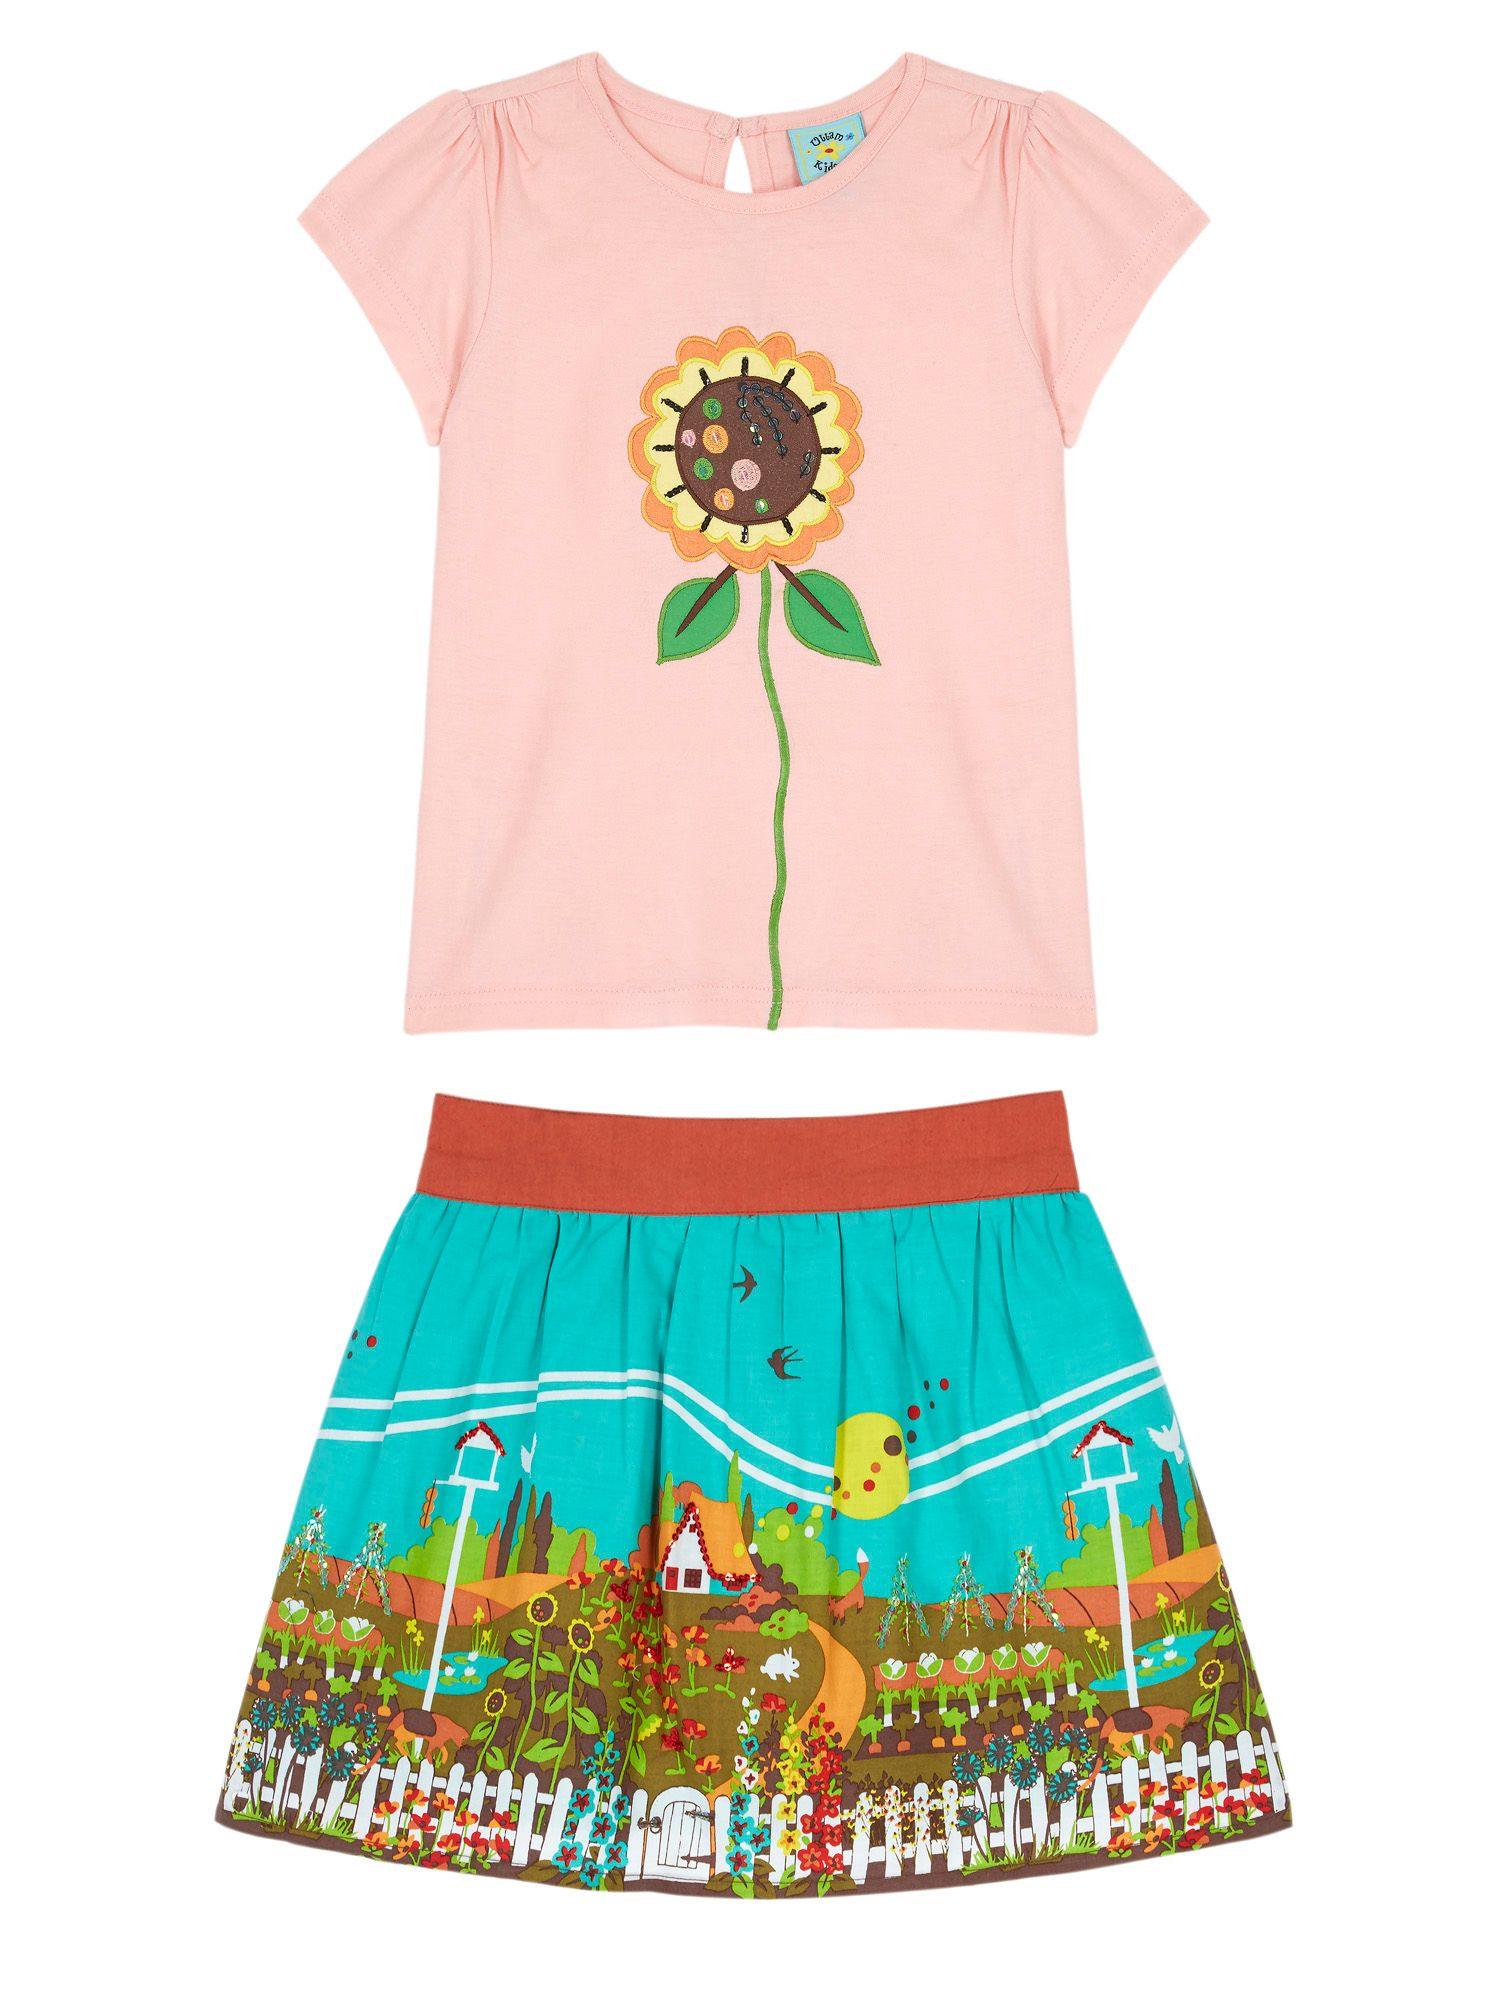 Photo of Uttam girls garden print t-shirt and skirt- pink